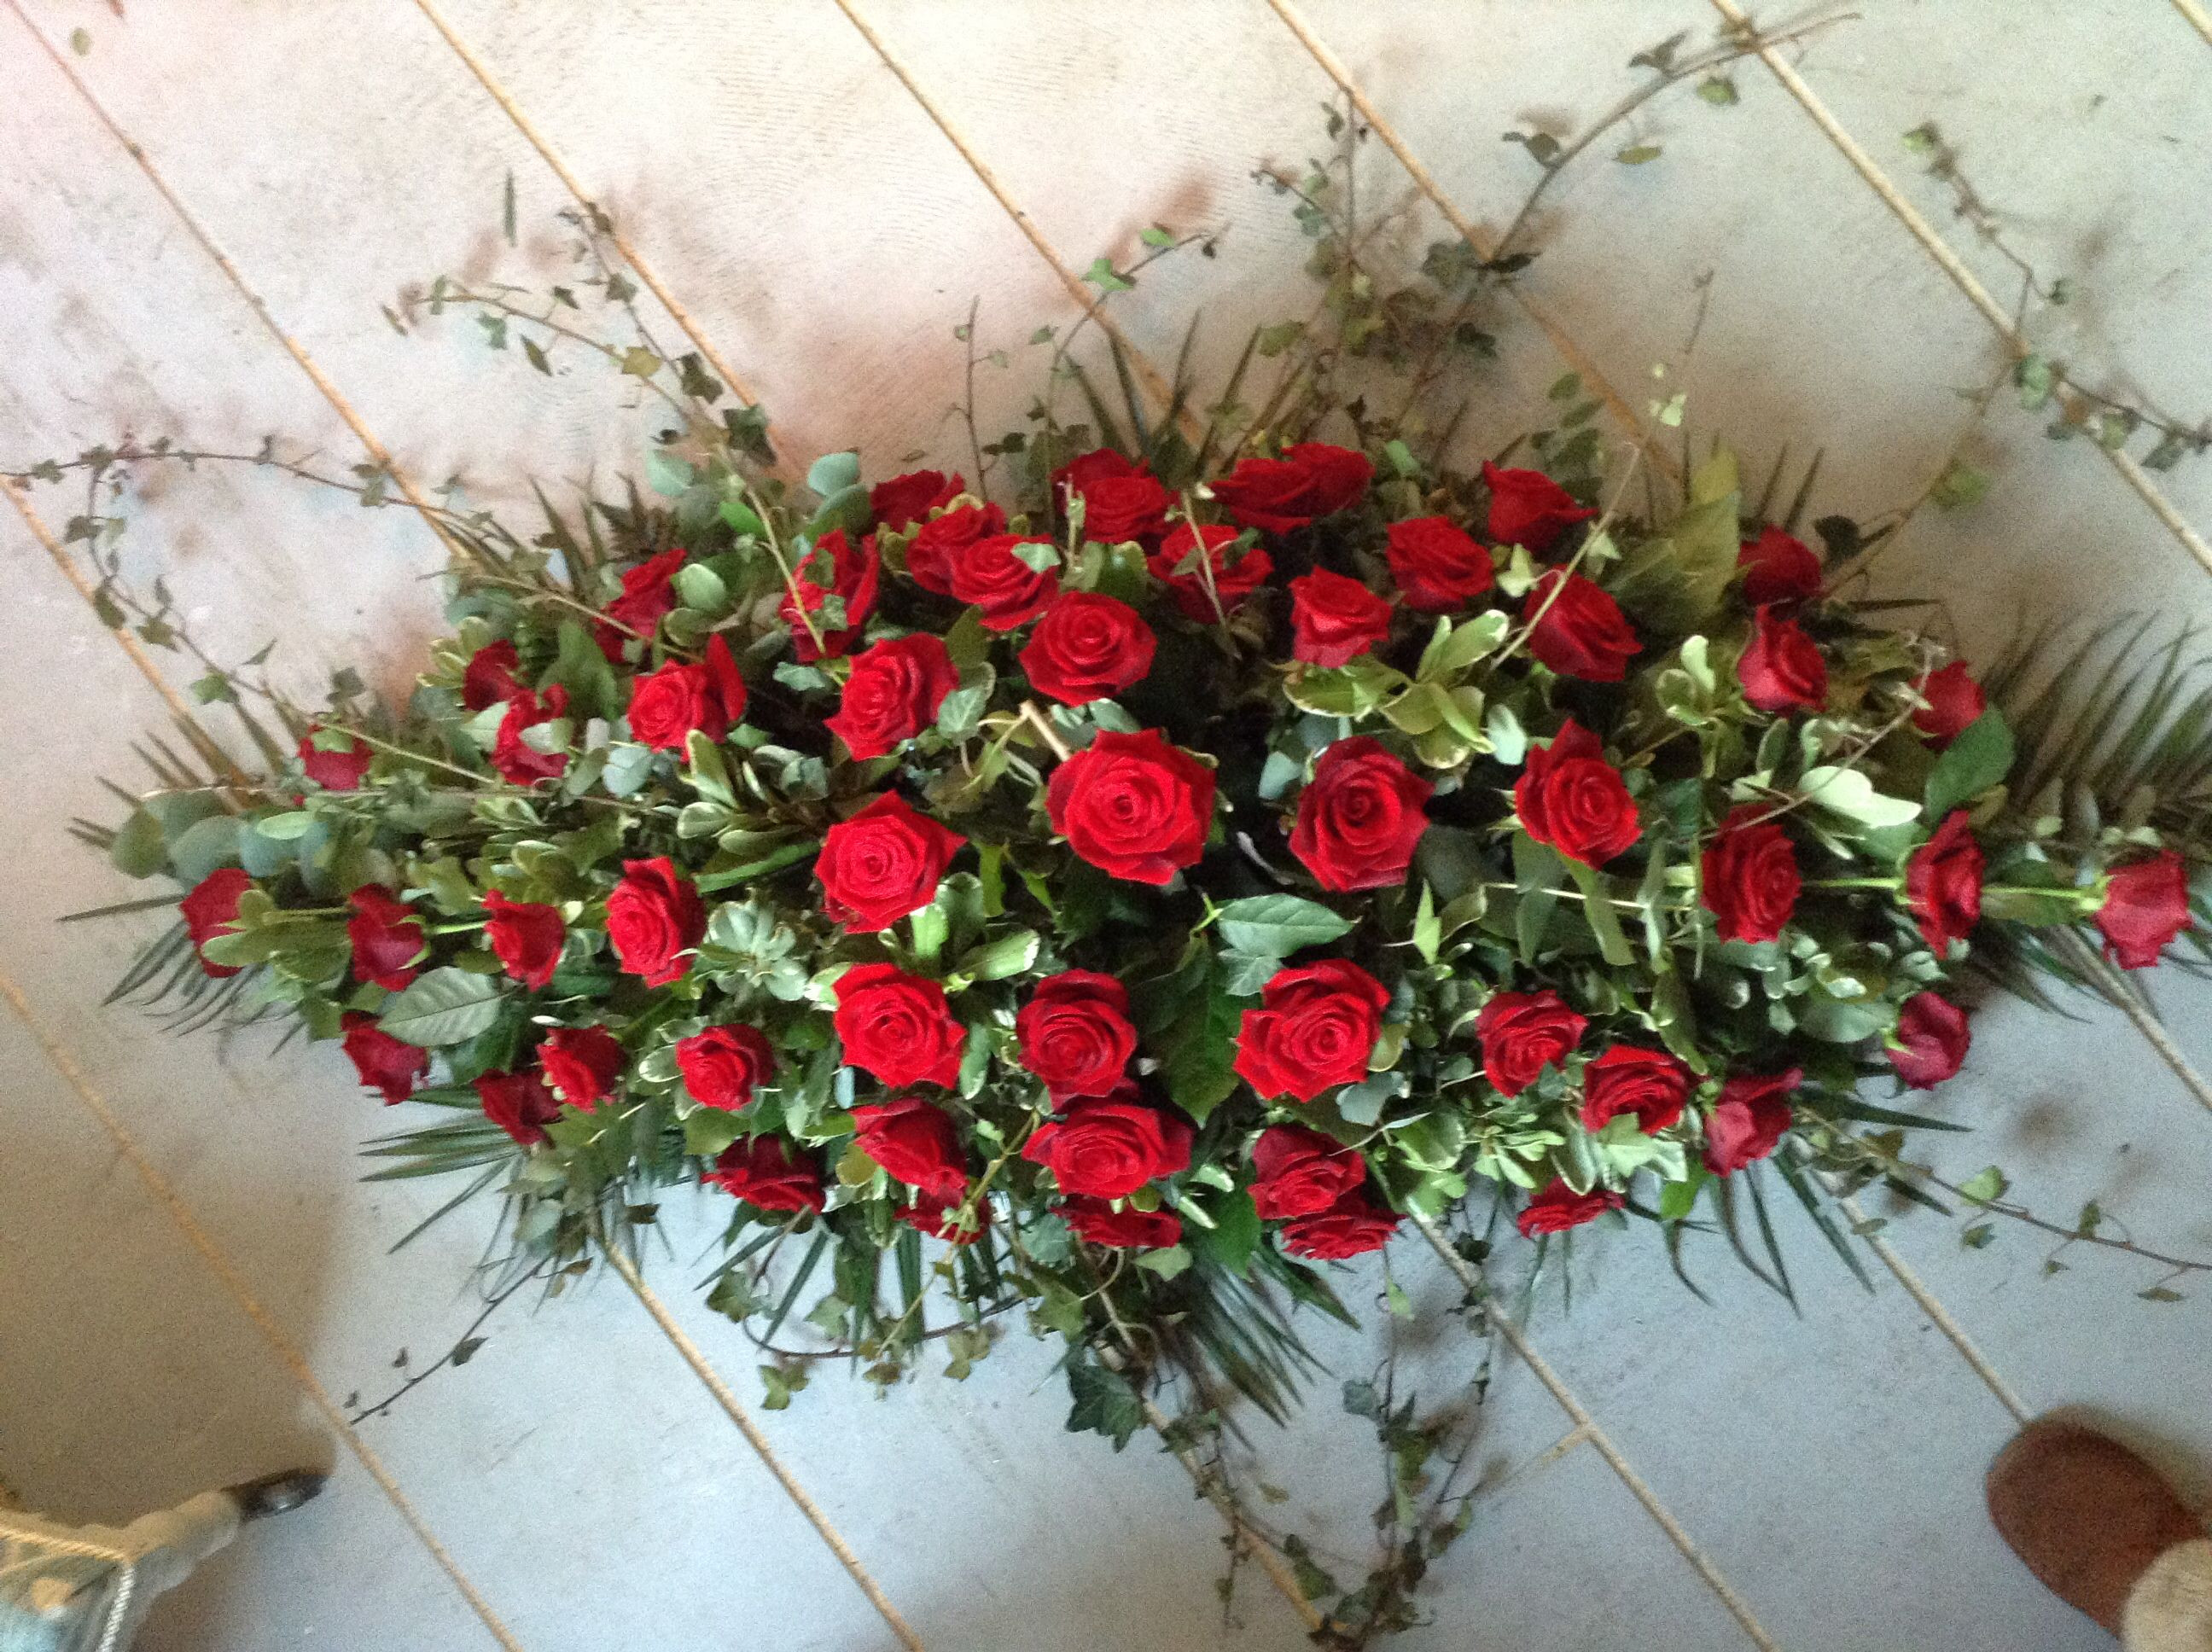 Red rose and red carnation funeral spray coffin spray casket spray funeral flowers